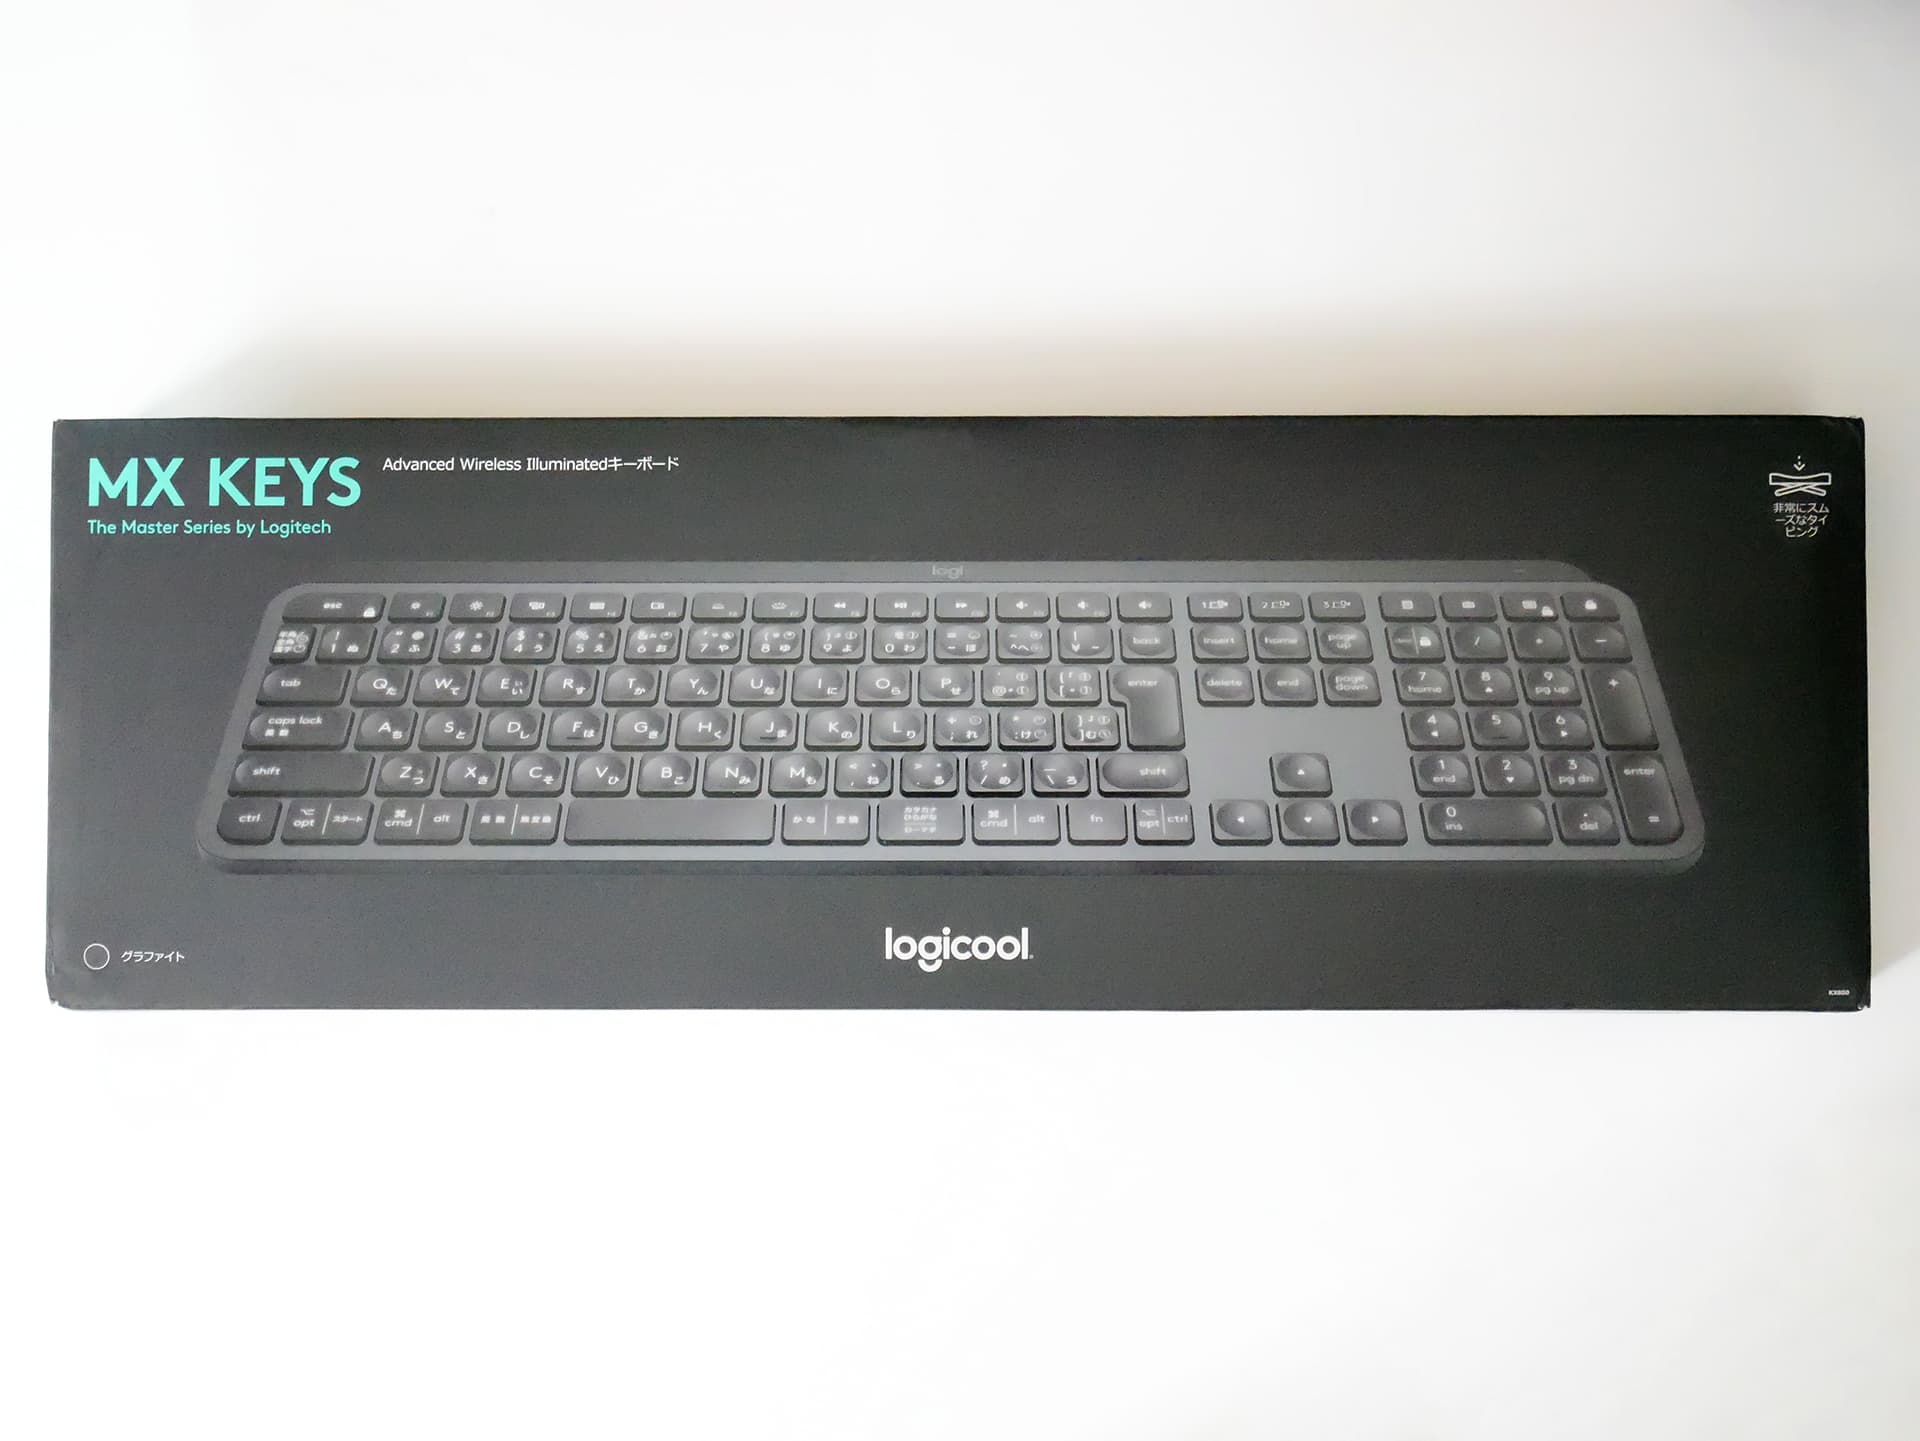 Logicool MX KEYS 外箱